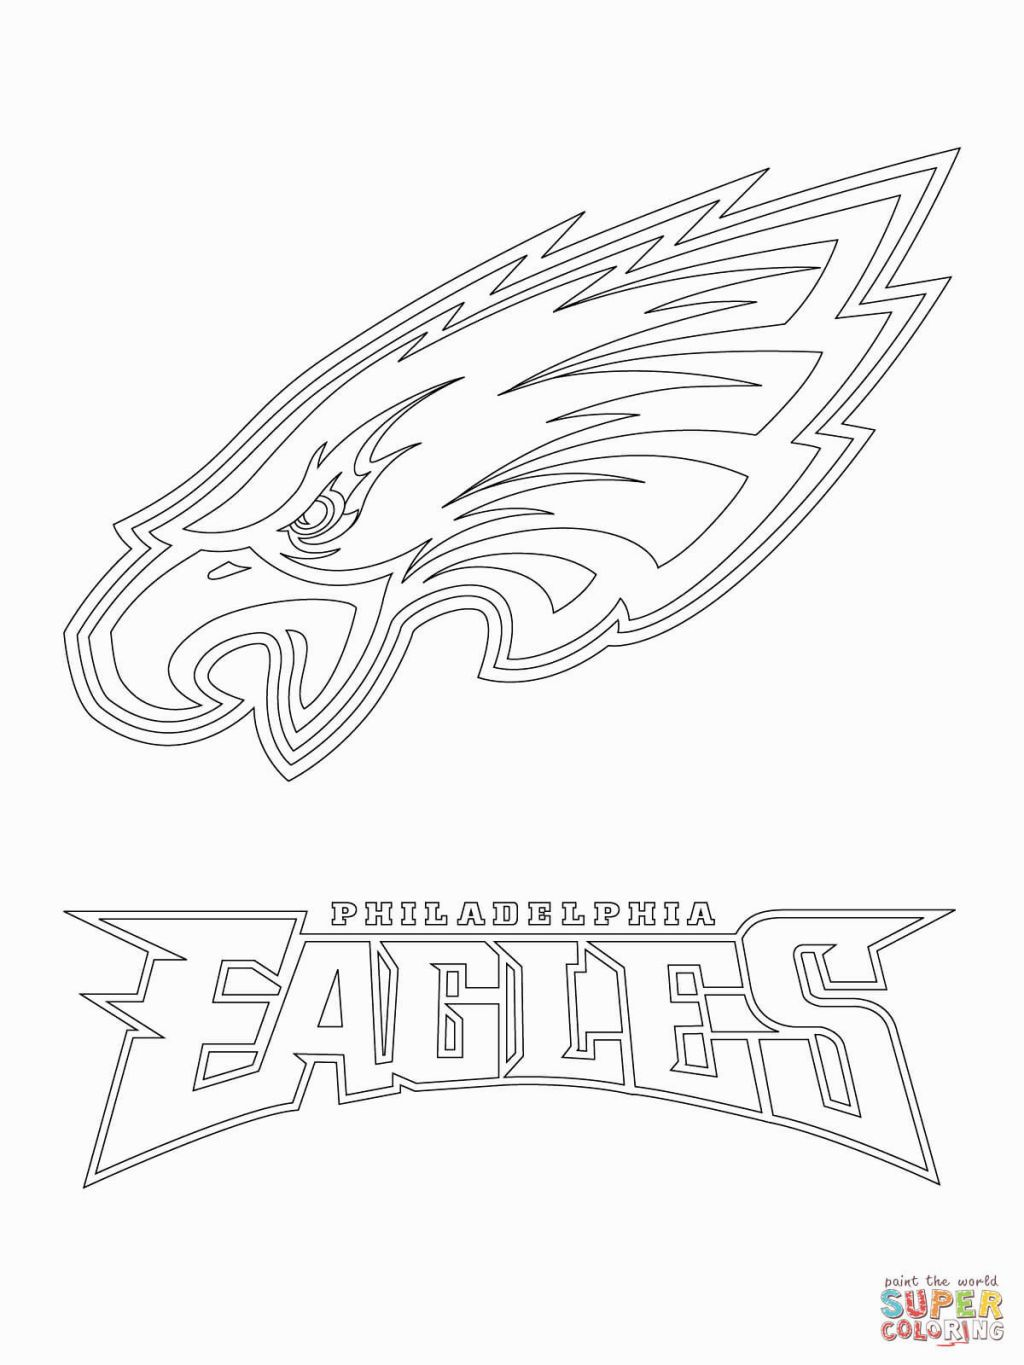 eagles coloring pages Philadelphia Eagles Coloring Pages | Coloring Pages | Philadelphia  eagles coloring pages